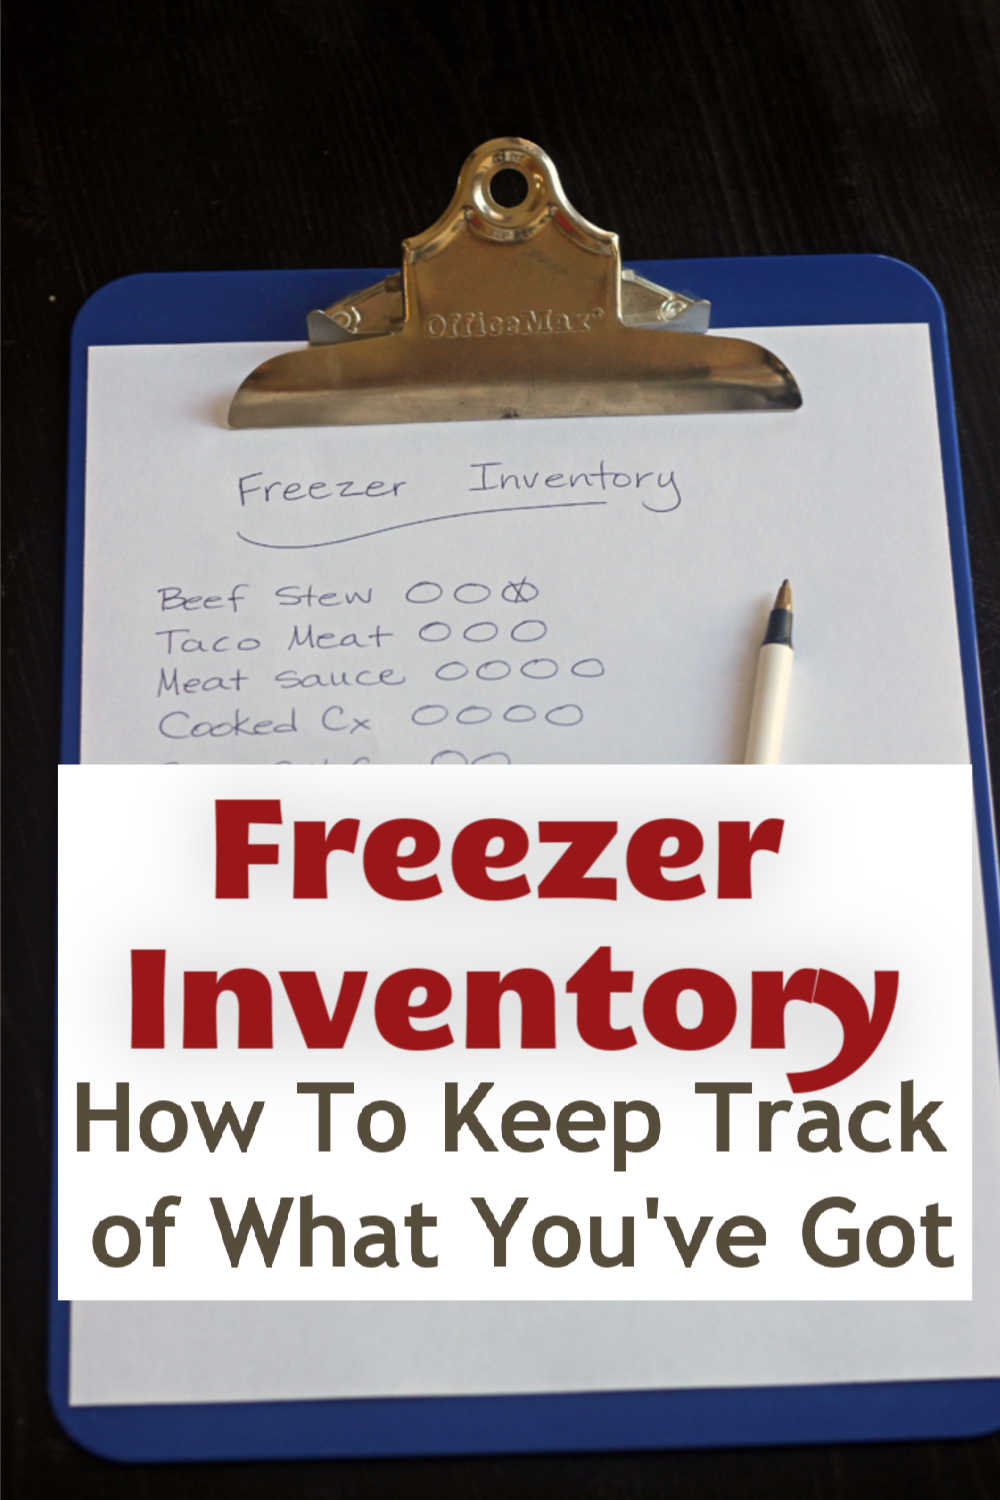 freezer inventory checklist on clipboard